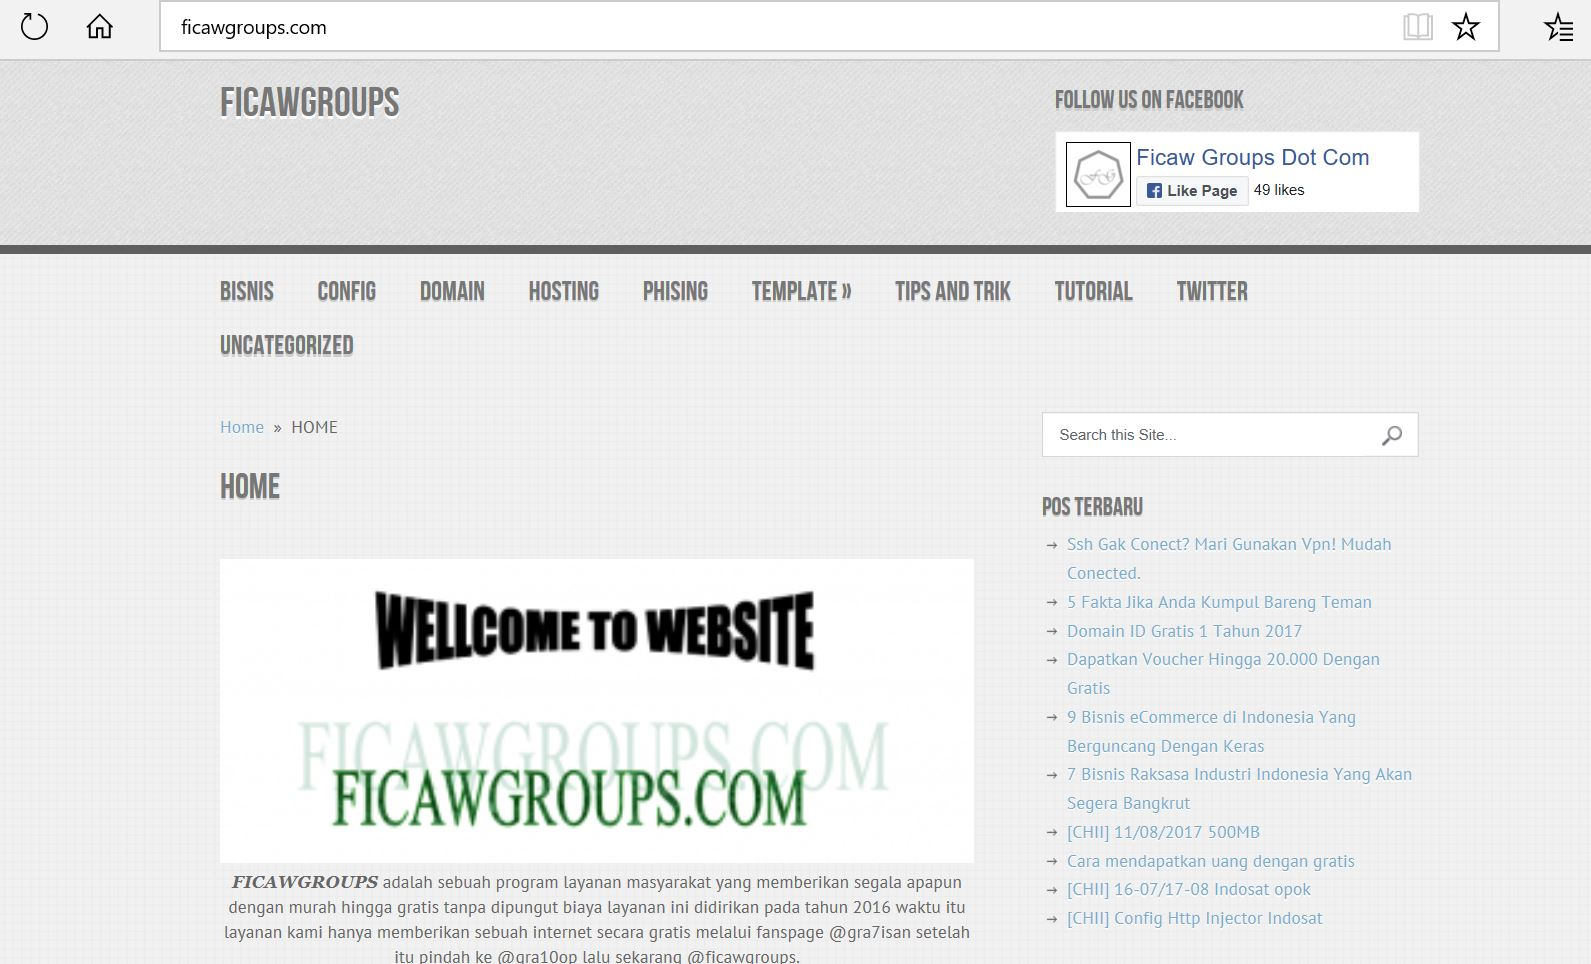 Ficaw Groups | Website serba gratis